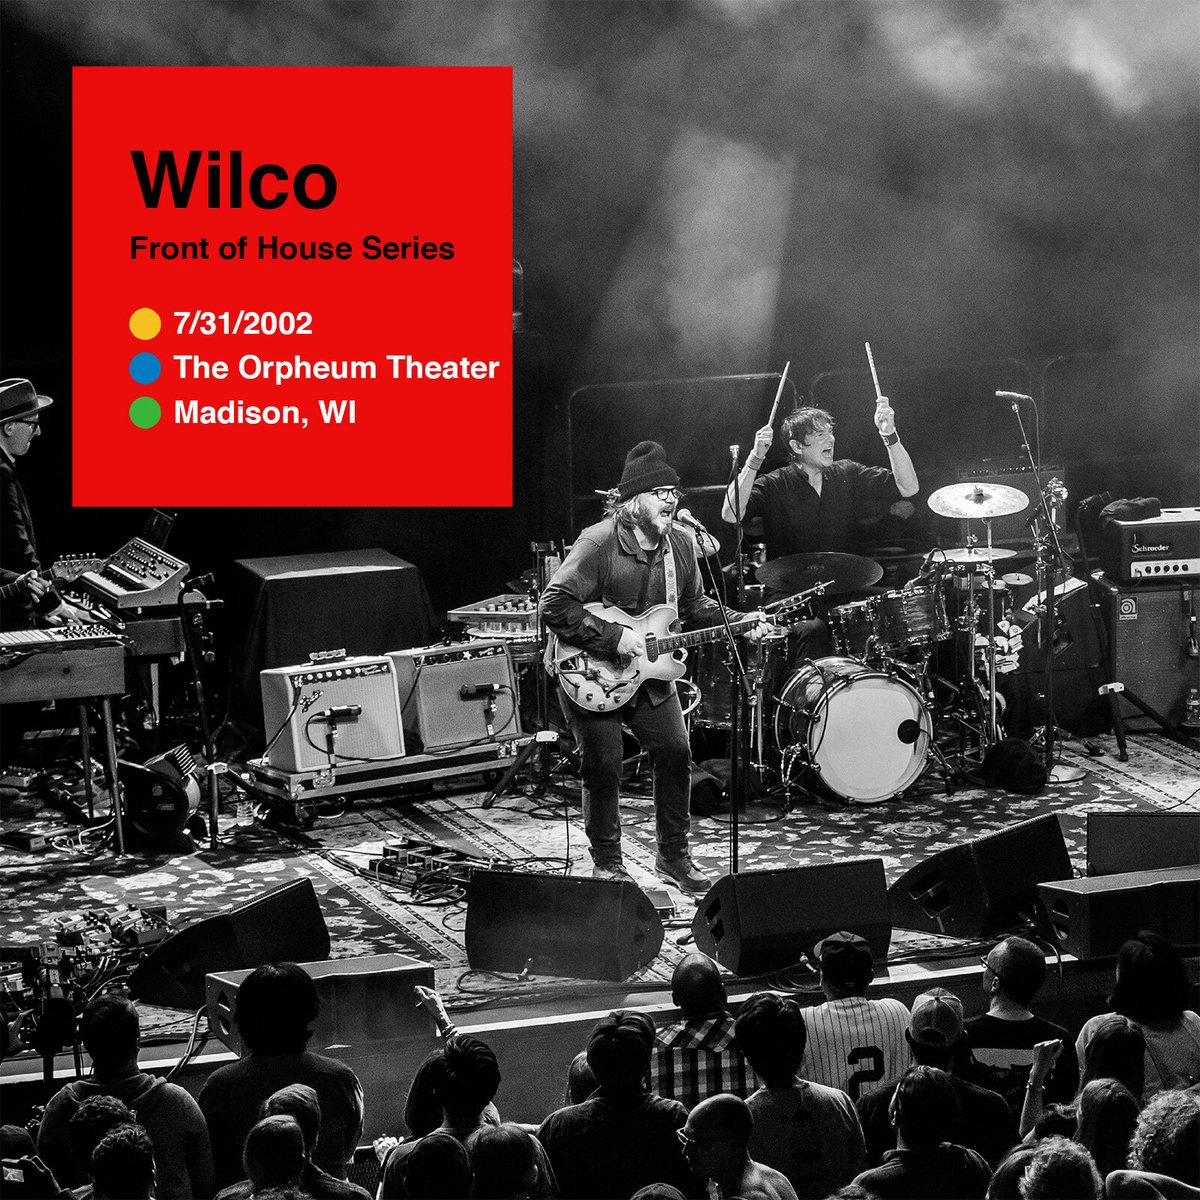 . @Wilco's June Front of House archival release is here! Open the https://t.co/oJslXk5RQo app and listen to 7/31/2002 from The Orpheum Theater in Madison, WI today: https://t.co/UM6O3z1JPH https://t.co/10nS0r0I9Q